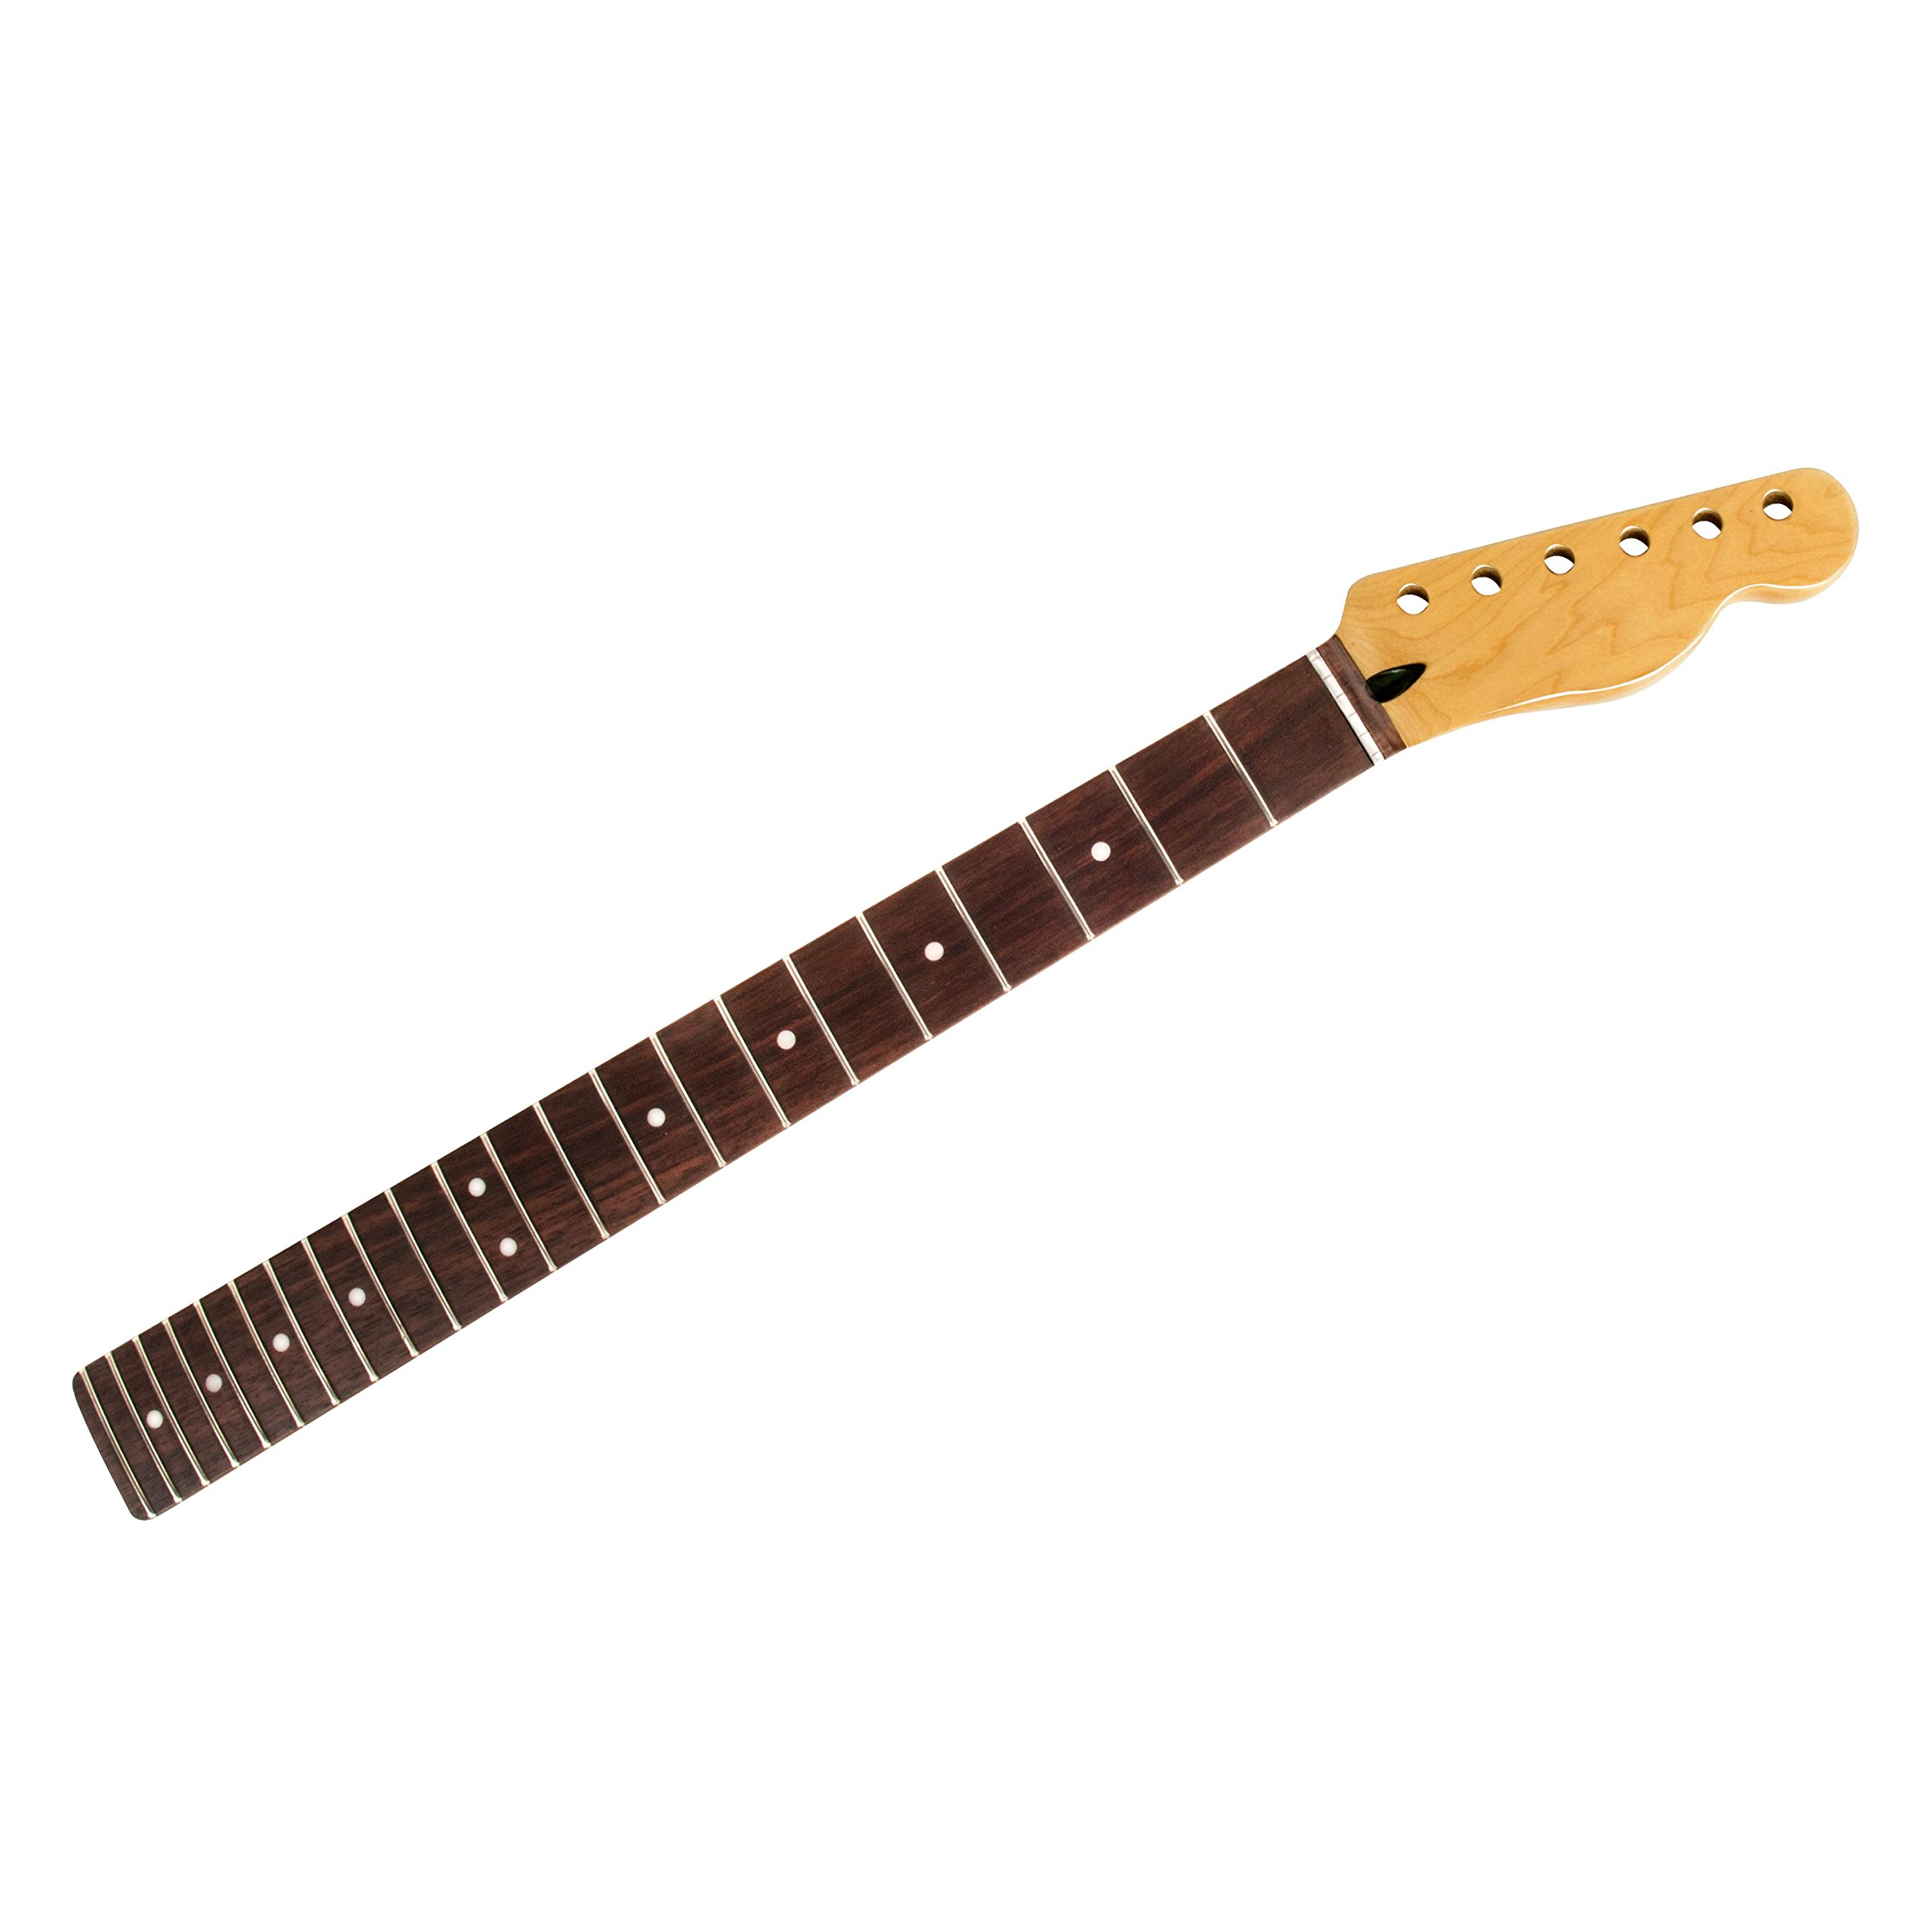 Mighty Mite Vintage Amber Neck for Tele, Rosewood Fingerboard